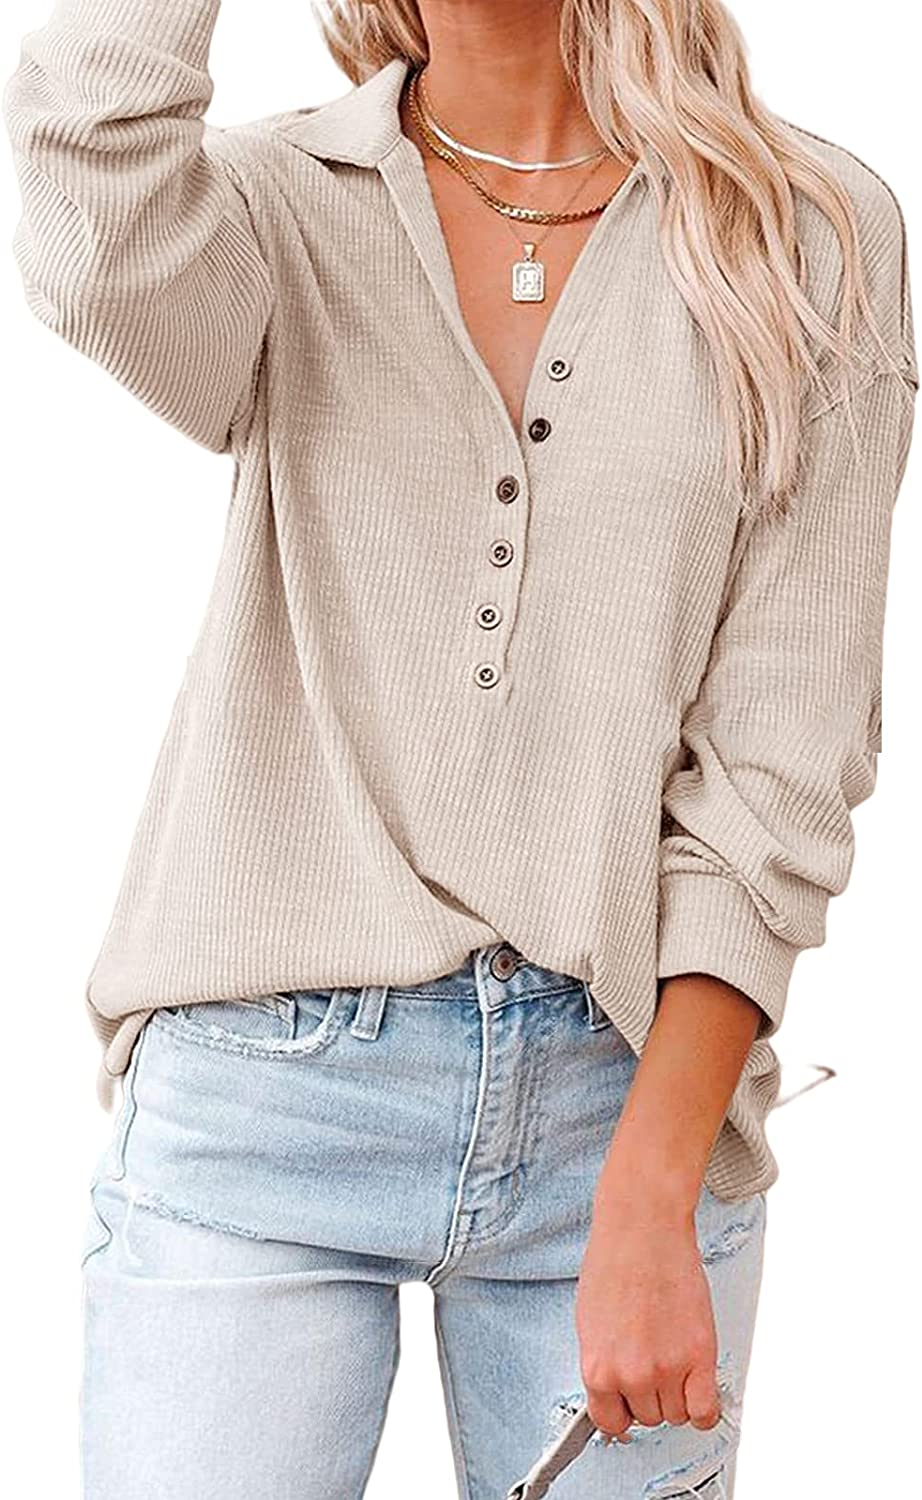 Bengbobar Womens Casual V Neck Tops Long Sleeve Plain Knitted Blouse Loose Shirts with Pocket